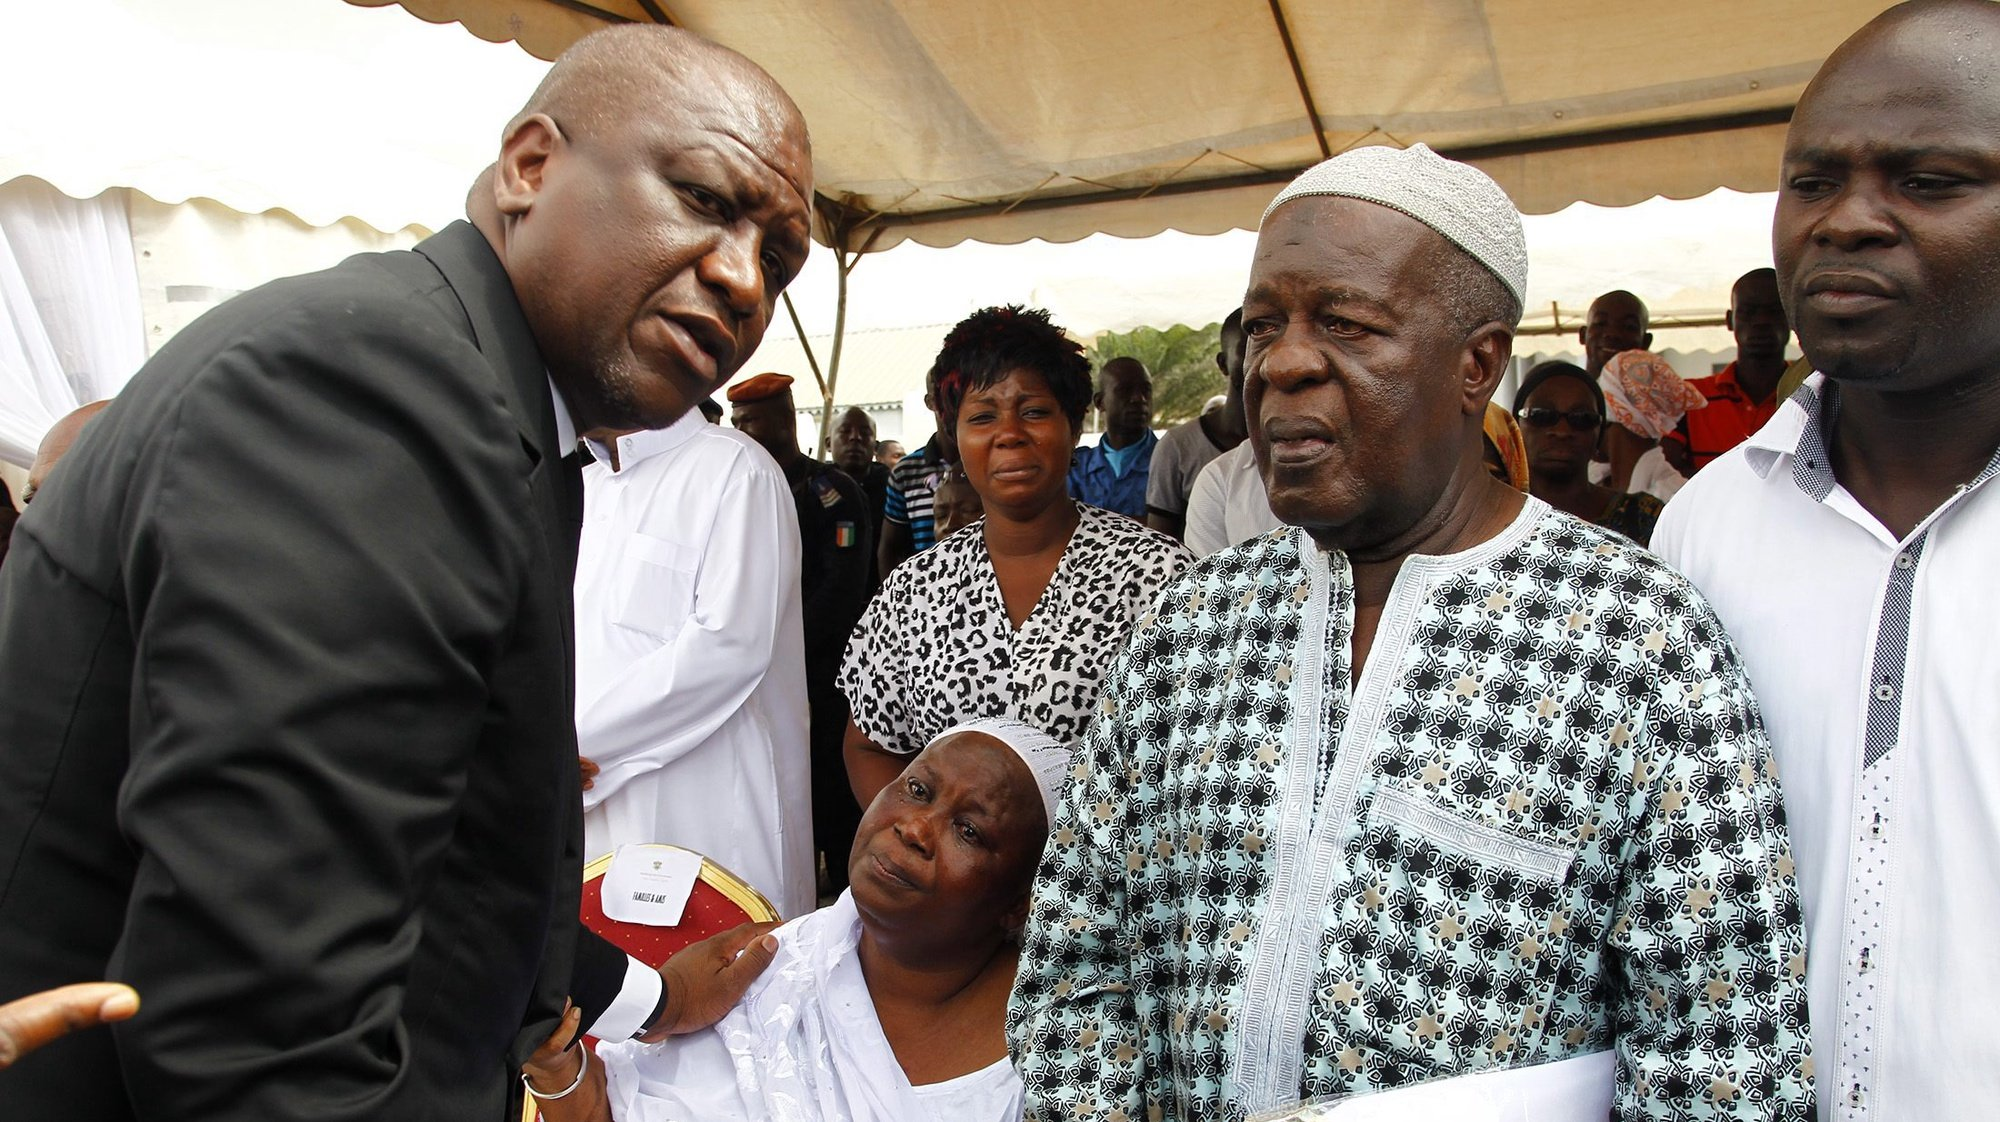 epa05249727 Ivorian minister of security and interior Hamed Bakayoko (L) comforts parents of victims who lost lives in the Grand Bassam beach attack during a ceremony to honour the victims in Abidjan, Ivory Coast, 08 April 2016. According to reports, fourteen civilians and six assailants were killed on 13 March 2016 when gunmen opened fire on guests on the beach at the Etoile du Sud hotel in the town of Grand Bassam which is popular with foreigners. Al-Qaeda in the Islamic Maghreb (AQIM) claimed responsibility for the attack. Among those killed were a French and German national.  EPA/LEGNAN KOULA